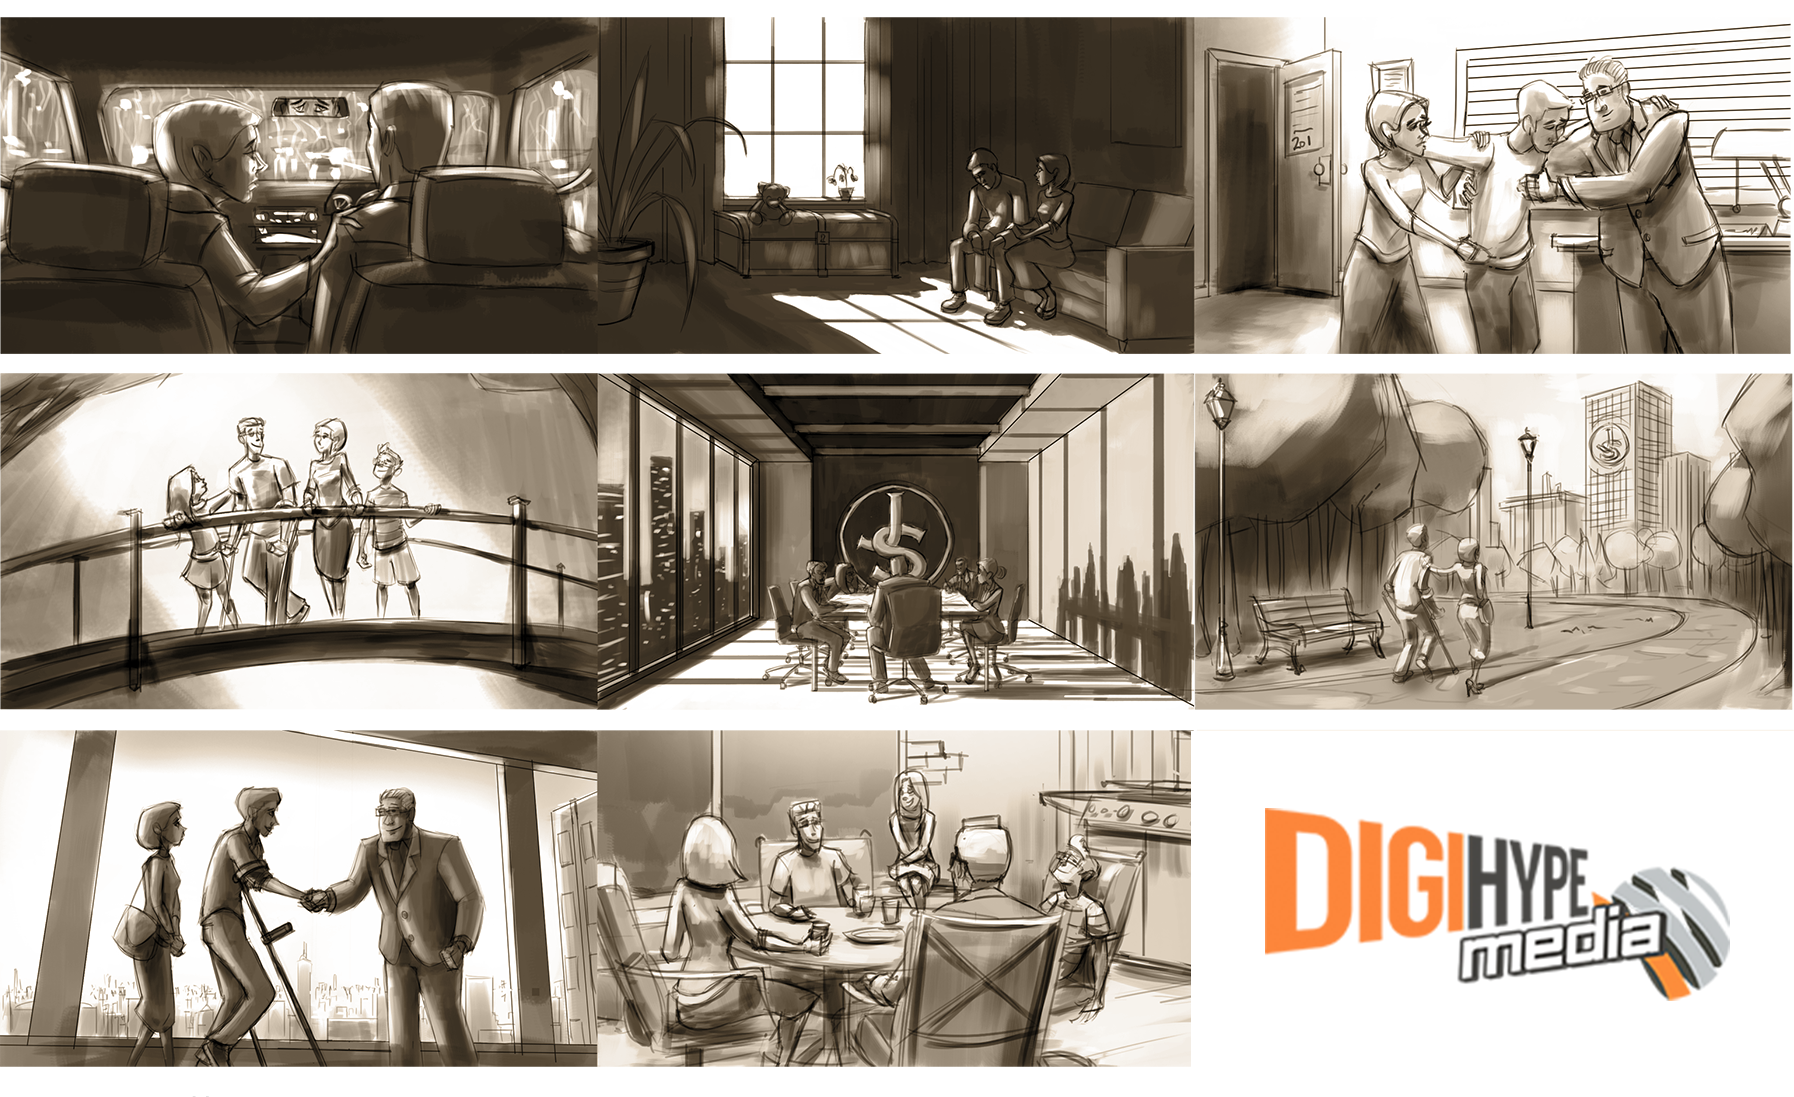 TV Commercial video storyboard for Law Firm